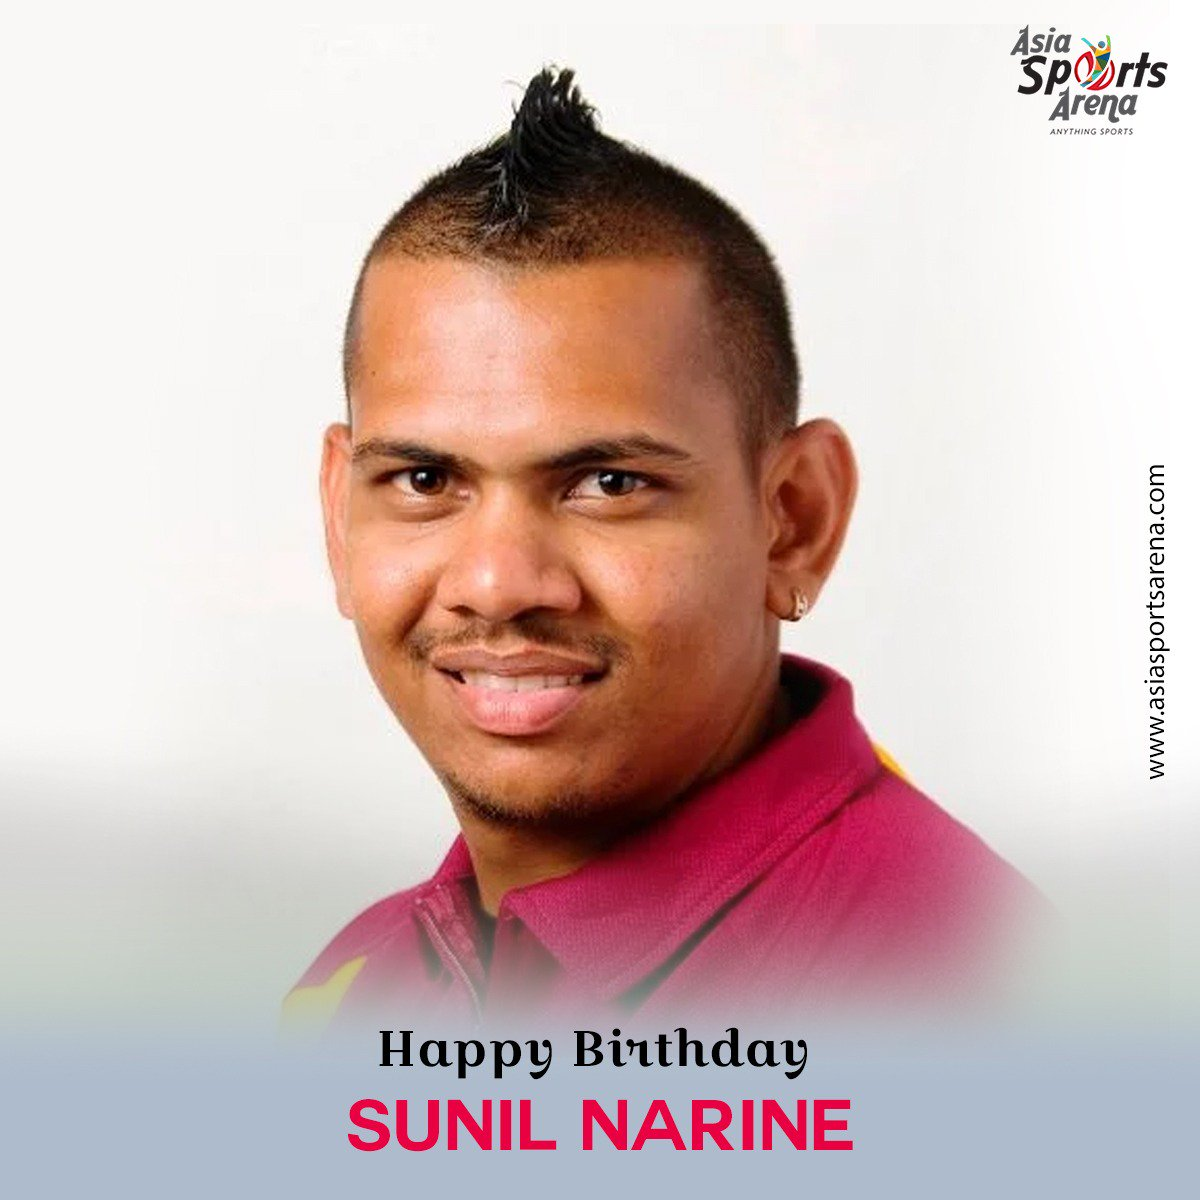 Wishing a very happy birthday to one of the best knights in the cricket world, Sunil Narine. #HappyBirthdaySunilNarine #Cricket #legend #AsiaSportsArena #AnythingSports #HappyBirthday #SunilNarine #Sports<br>http://pic.twitter.com/T7myhK1QpI